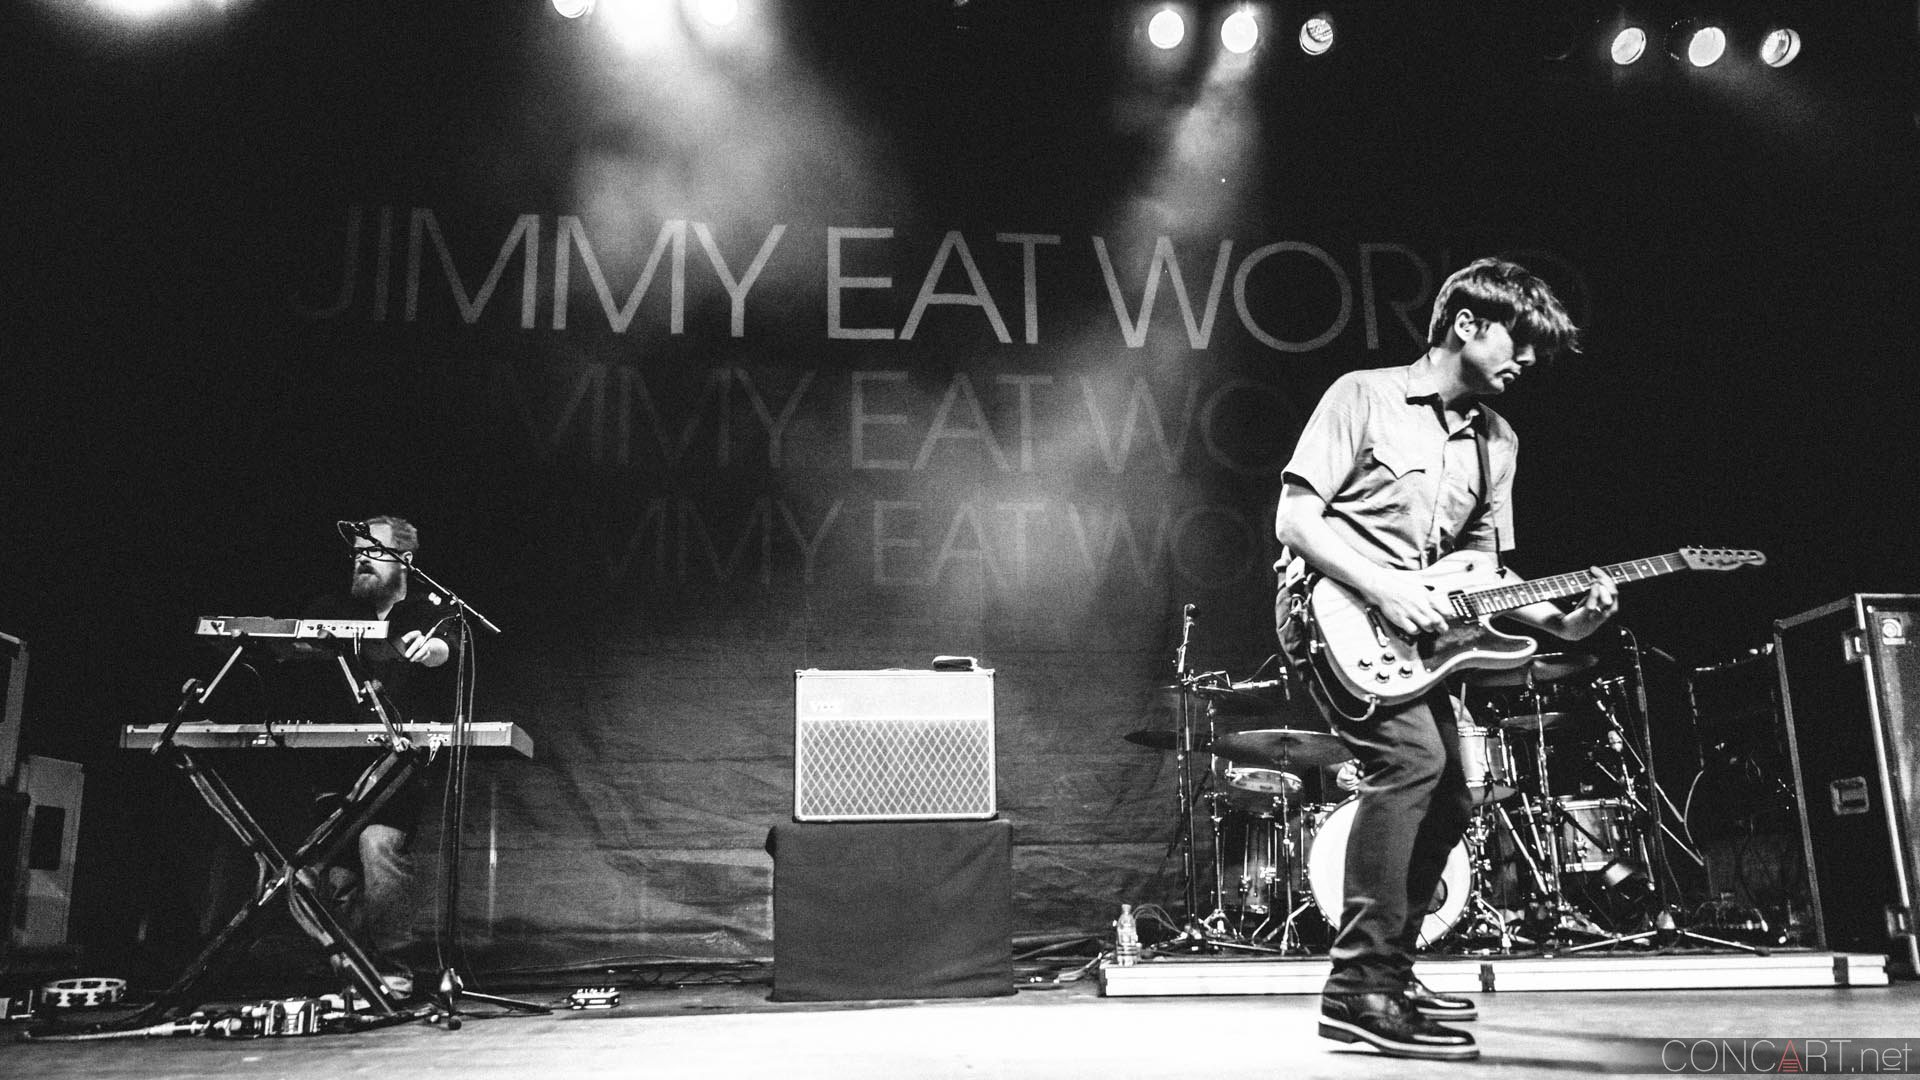 jimmy eat world futures tour live